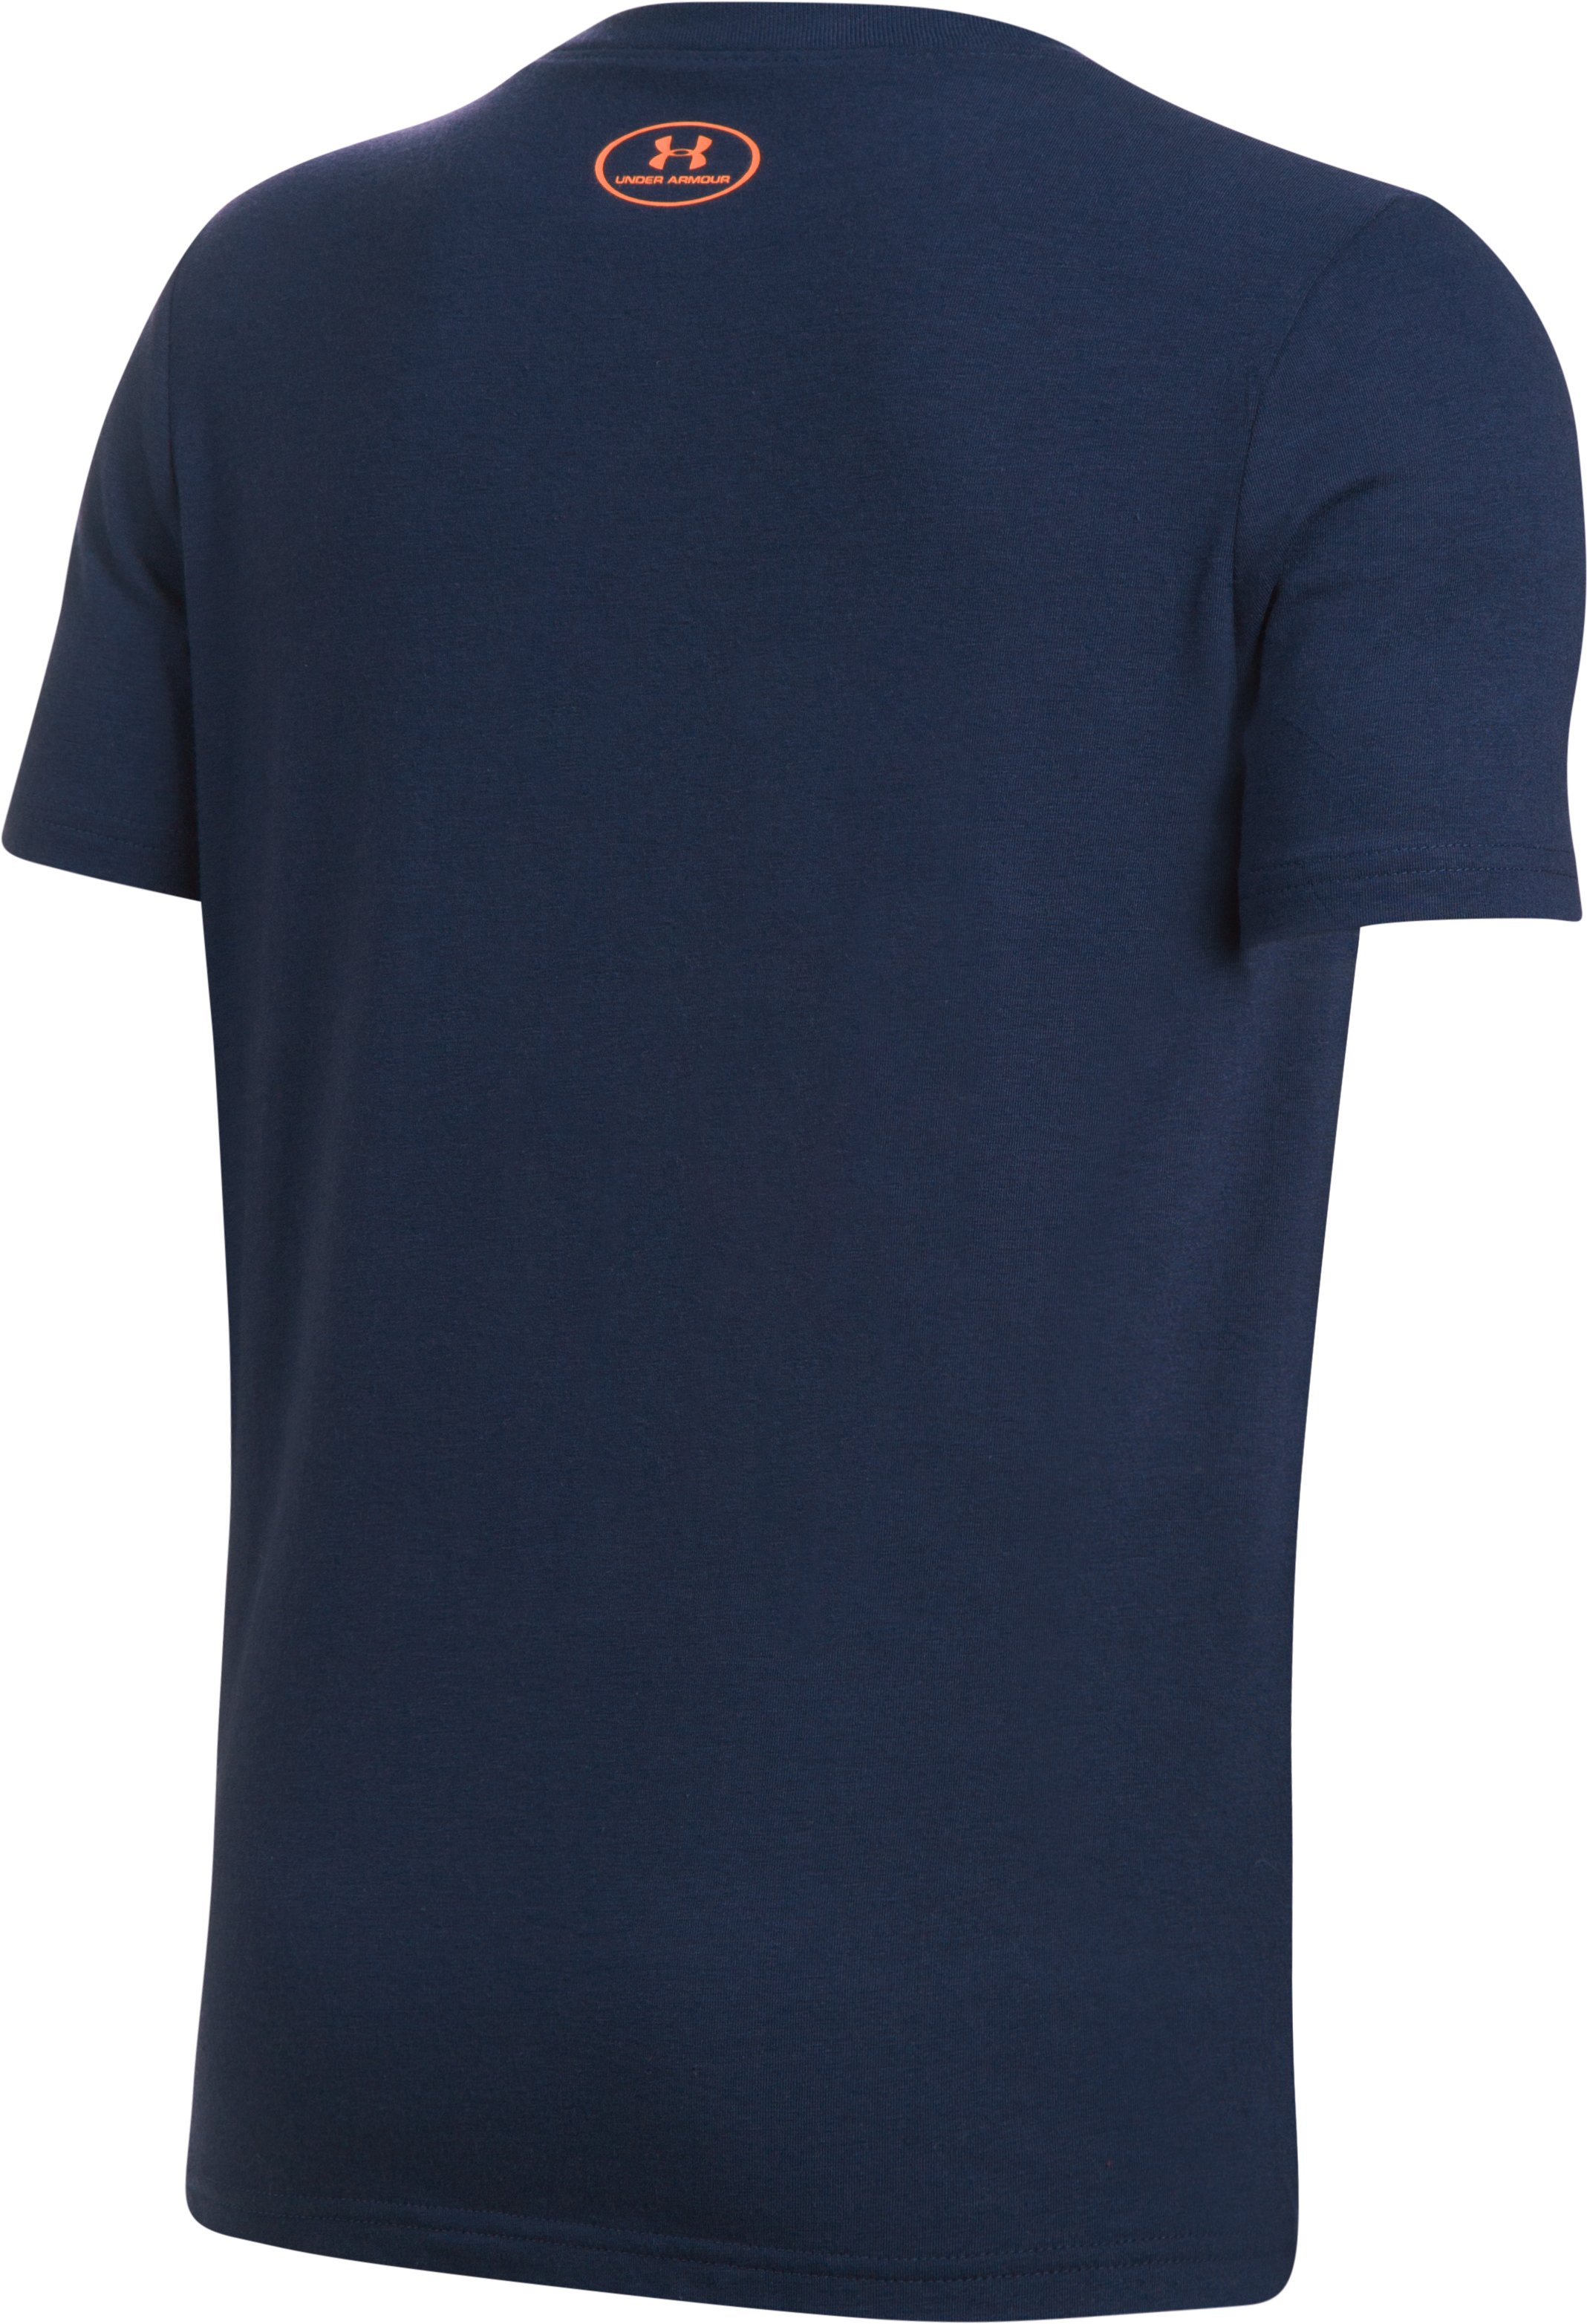 Boys' SC30 Logo T-Shirt, Midnight Navy, undefined